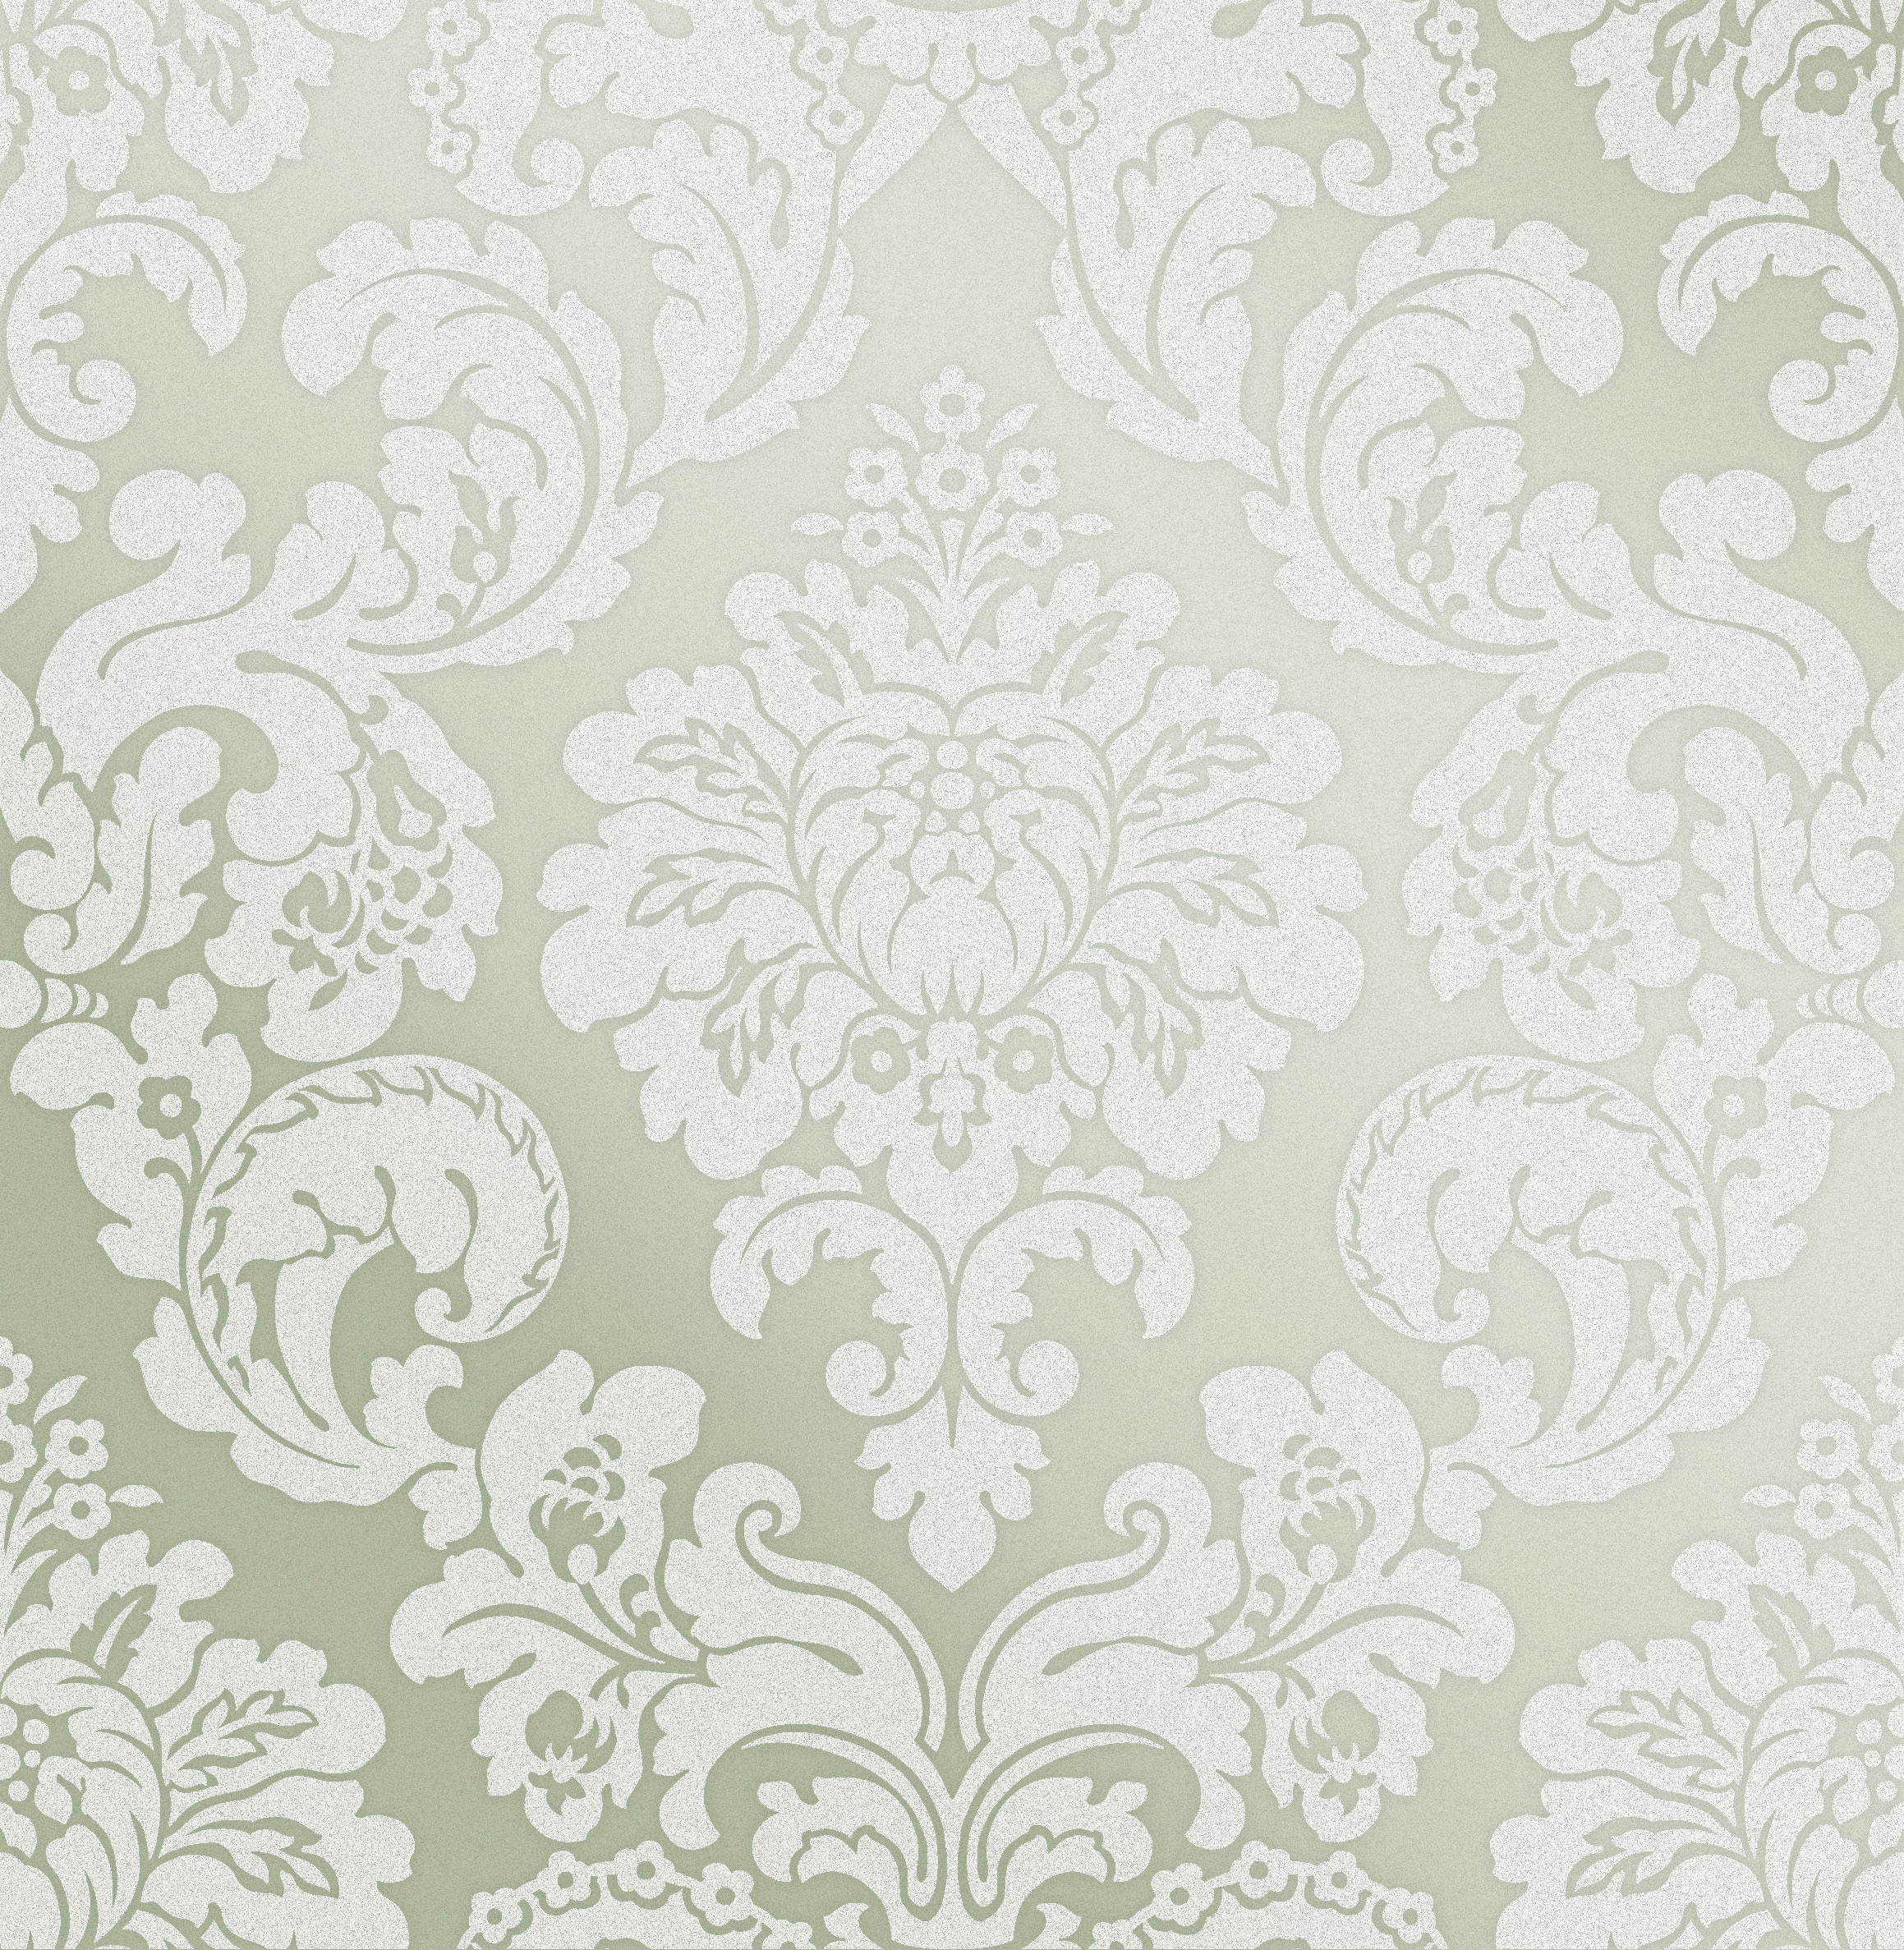 Fine Decor Monaco Damask Wallpaper Fd42250 Antique Gold